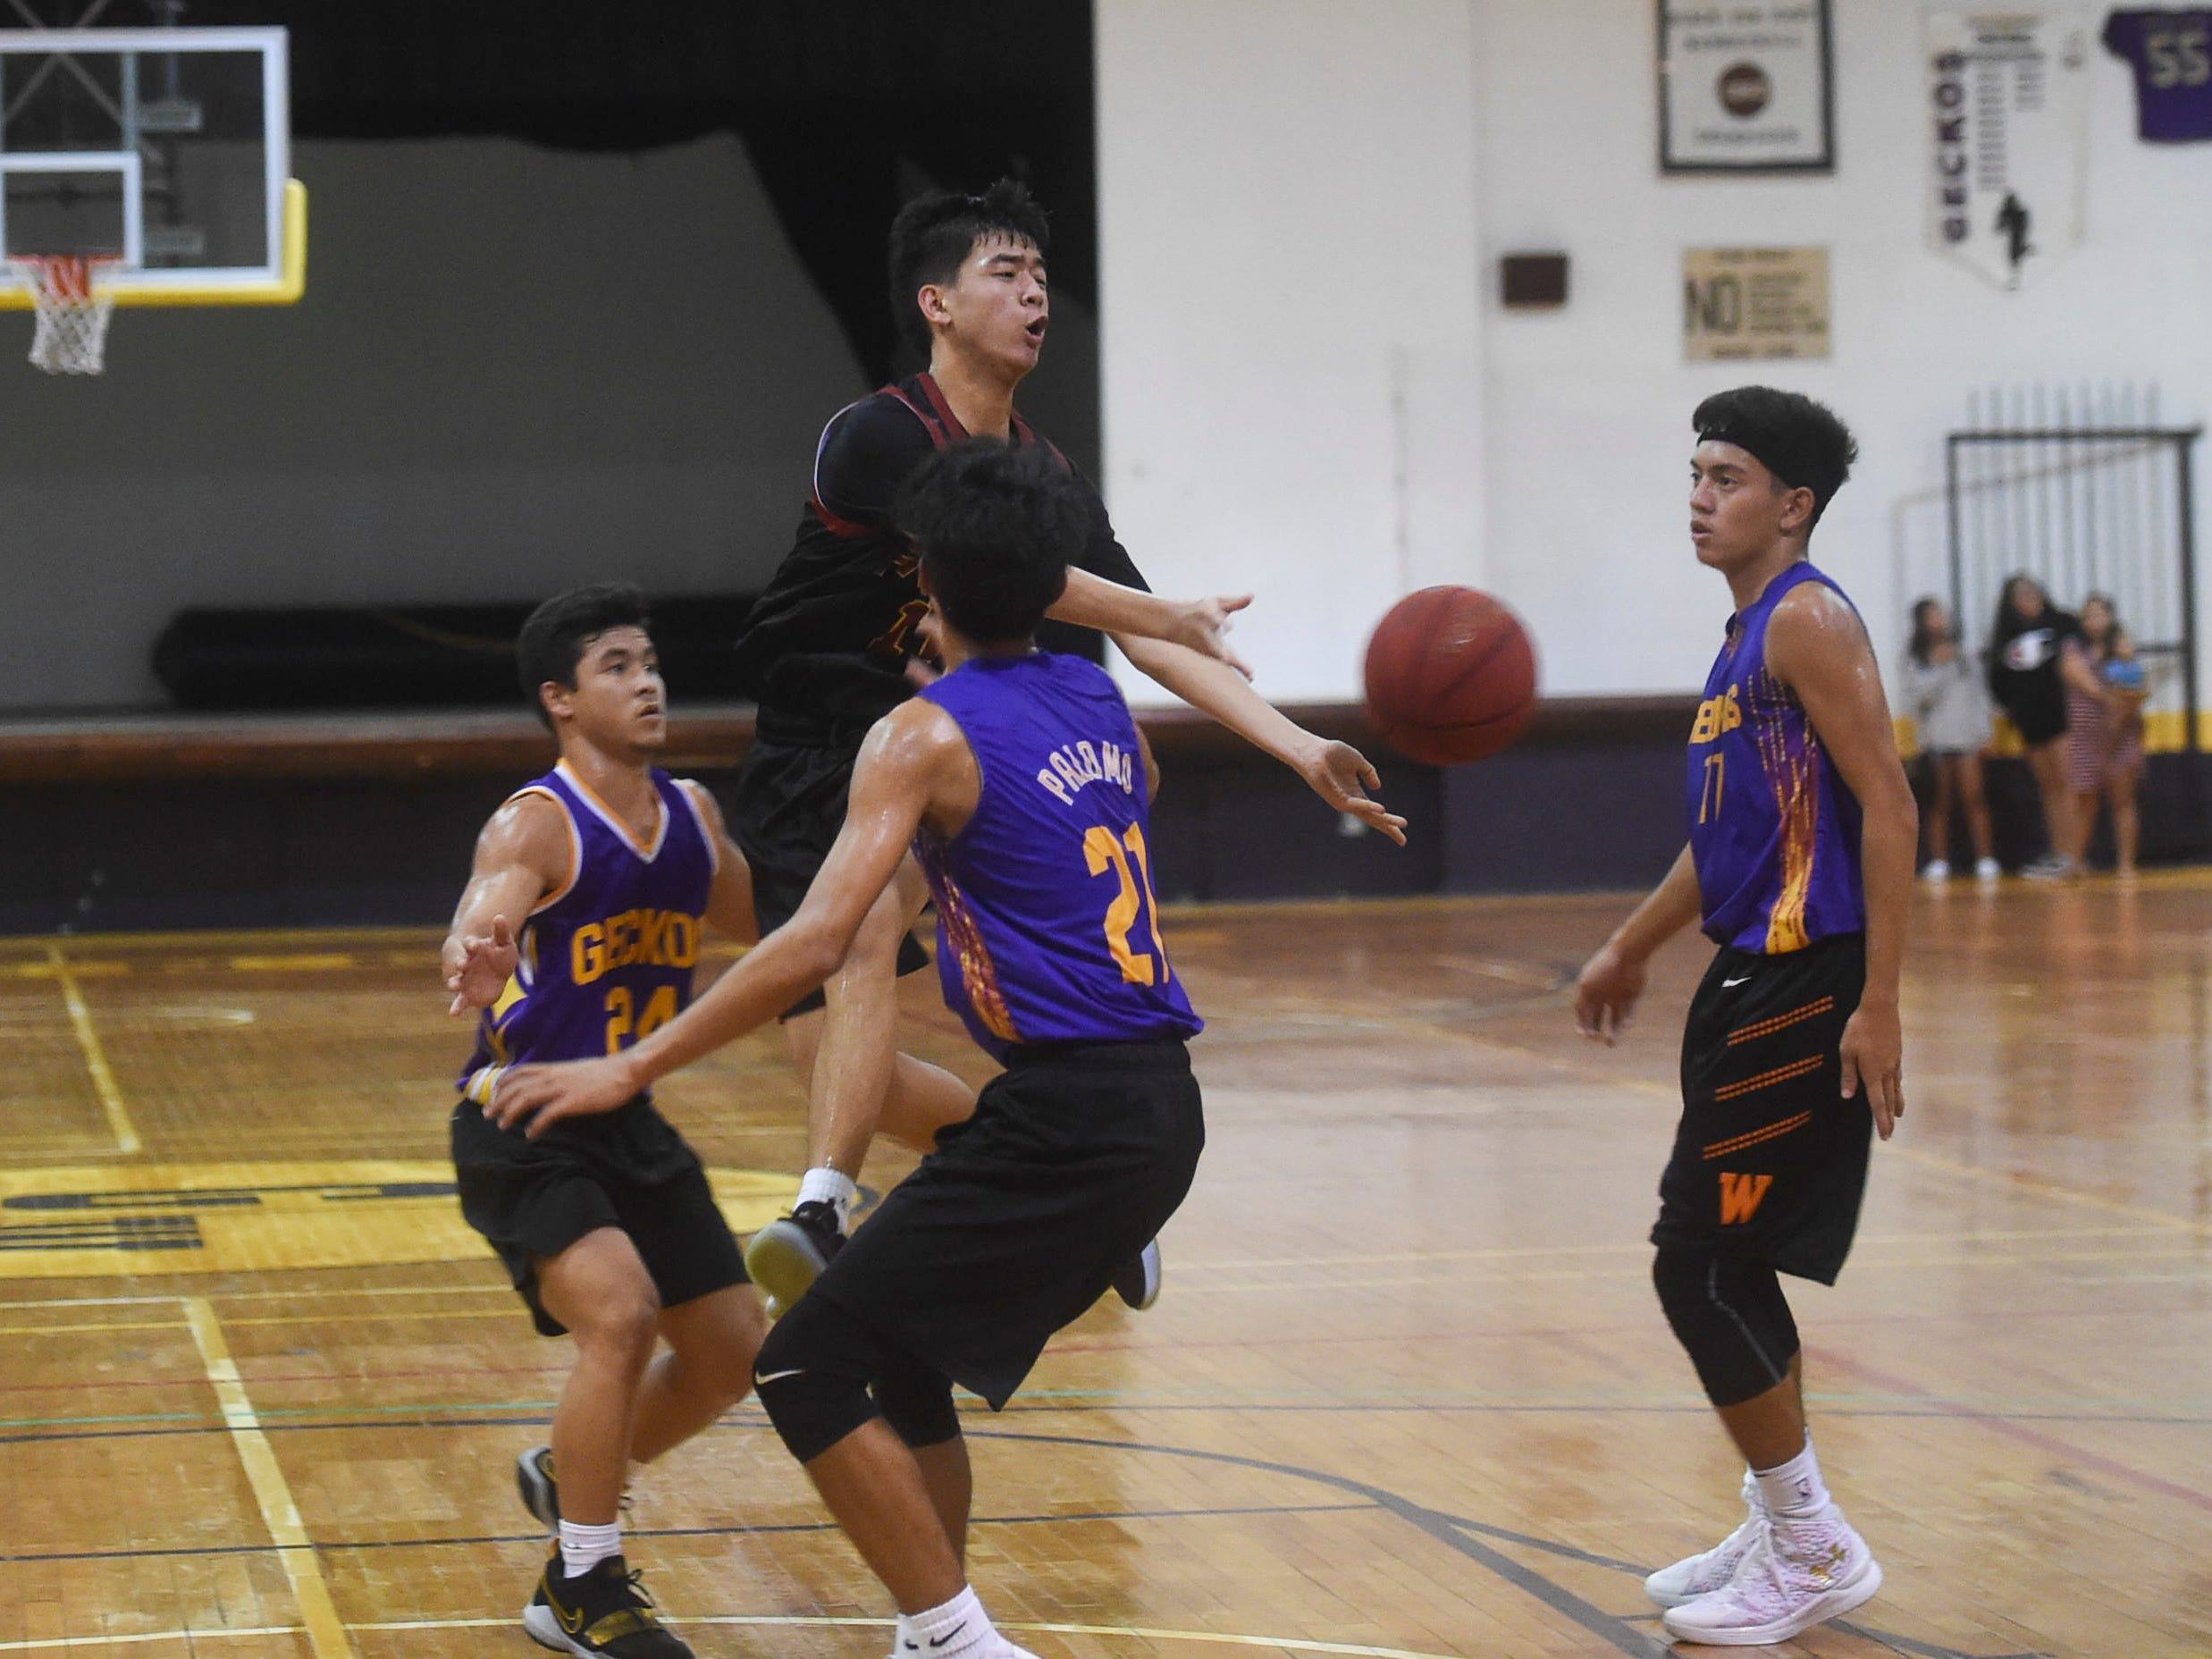 Father Duenas' Colin Santiago (11) passes out of a double team against the George Washington Geckos during their Independent Interscholastic Athletic Association of Guam Boys' Basketball game at the GW High School gym, Jan. 19, 2019. The Friars came through with a 52-69 comeback victory over the Geckos after trailing in the first half.